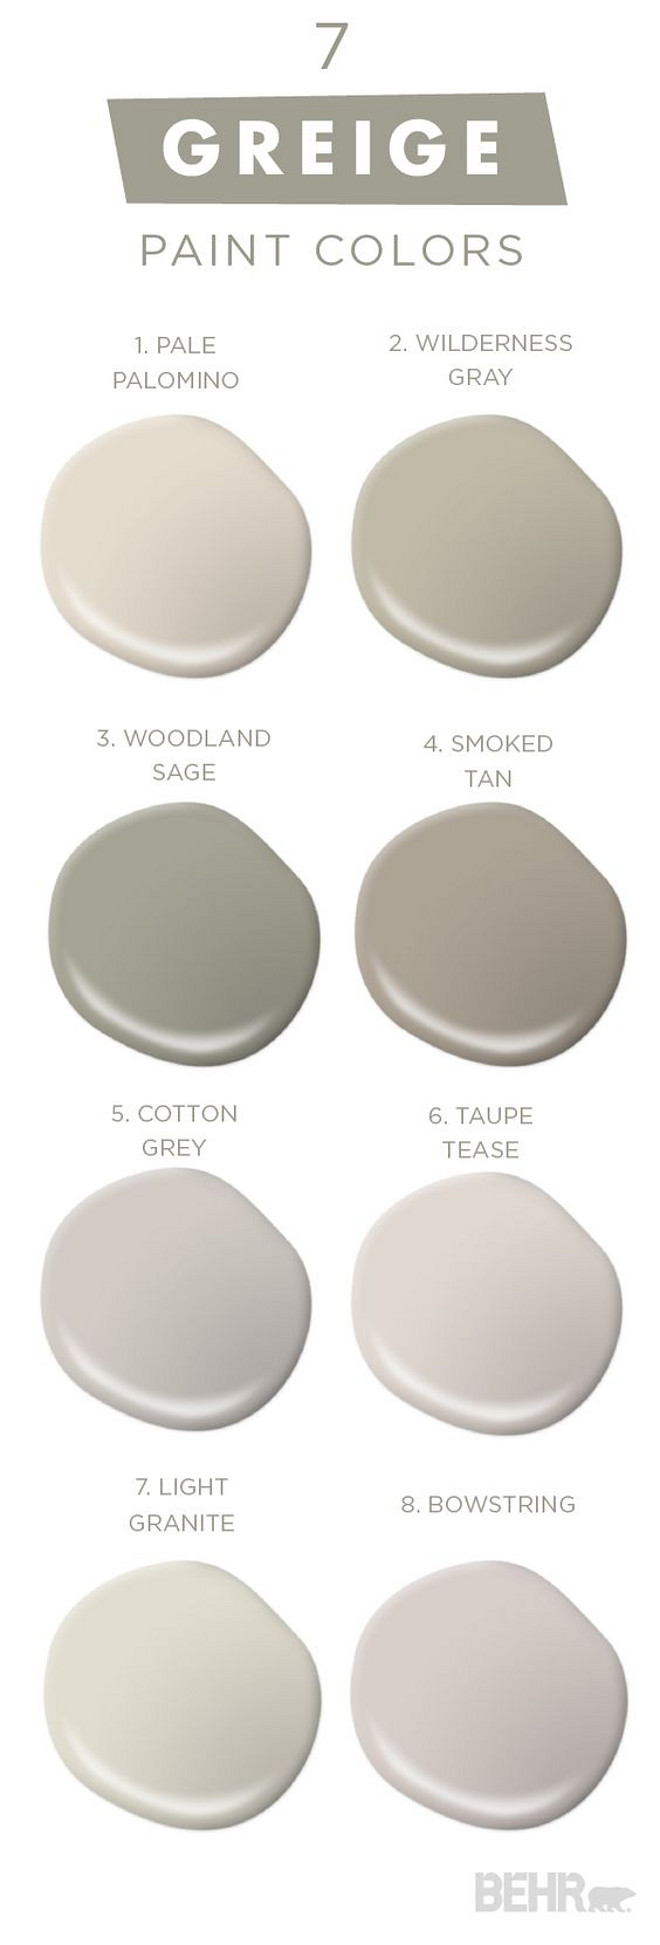 7 Greige Paint Colors Best Er By Behr Pale Palomino